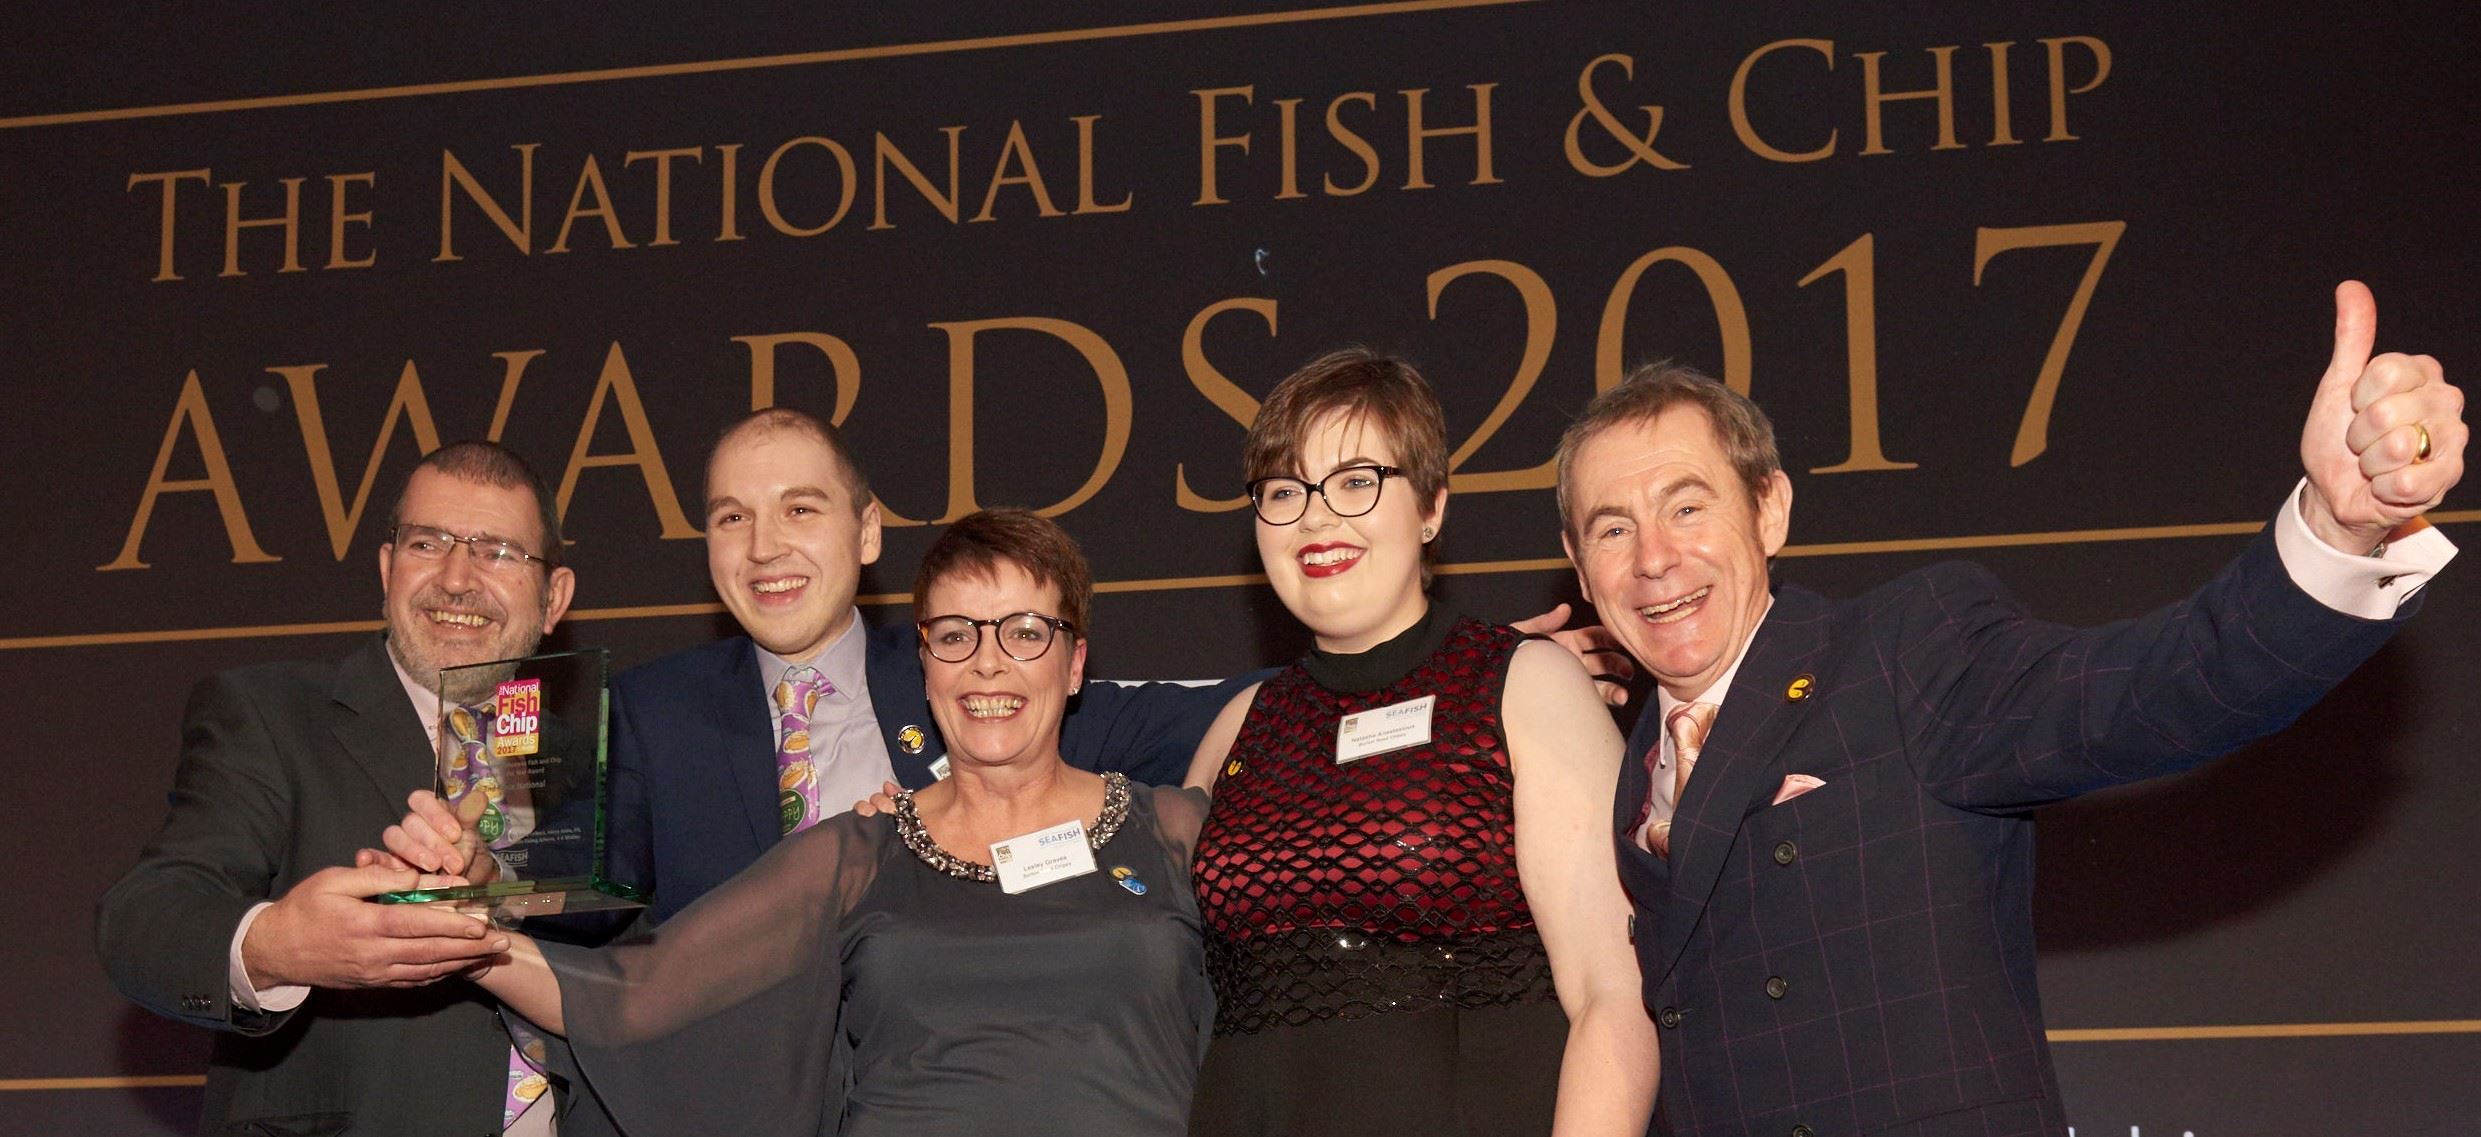 National Fish and Chip Awards 2017